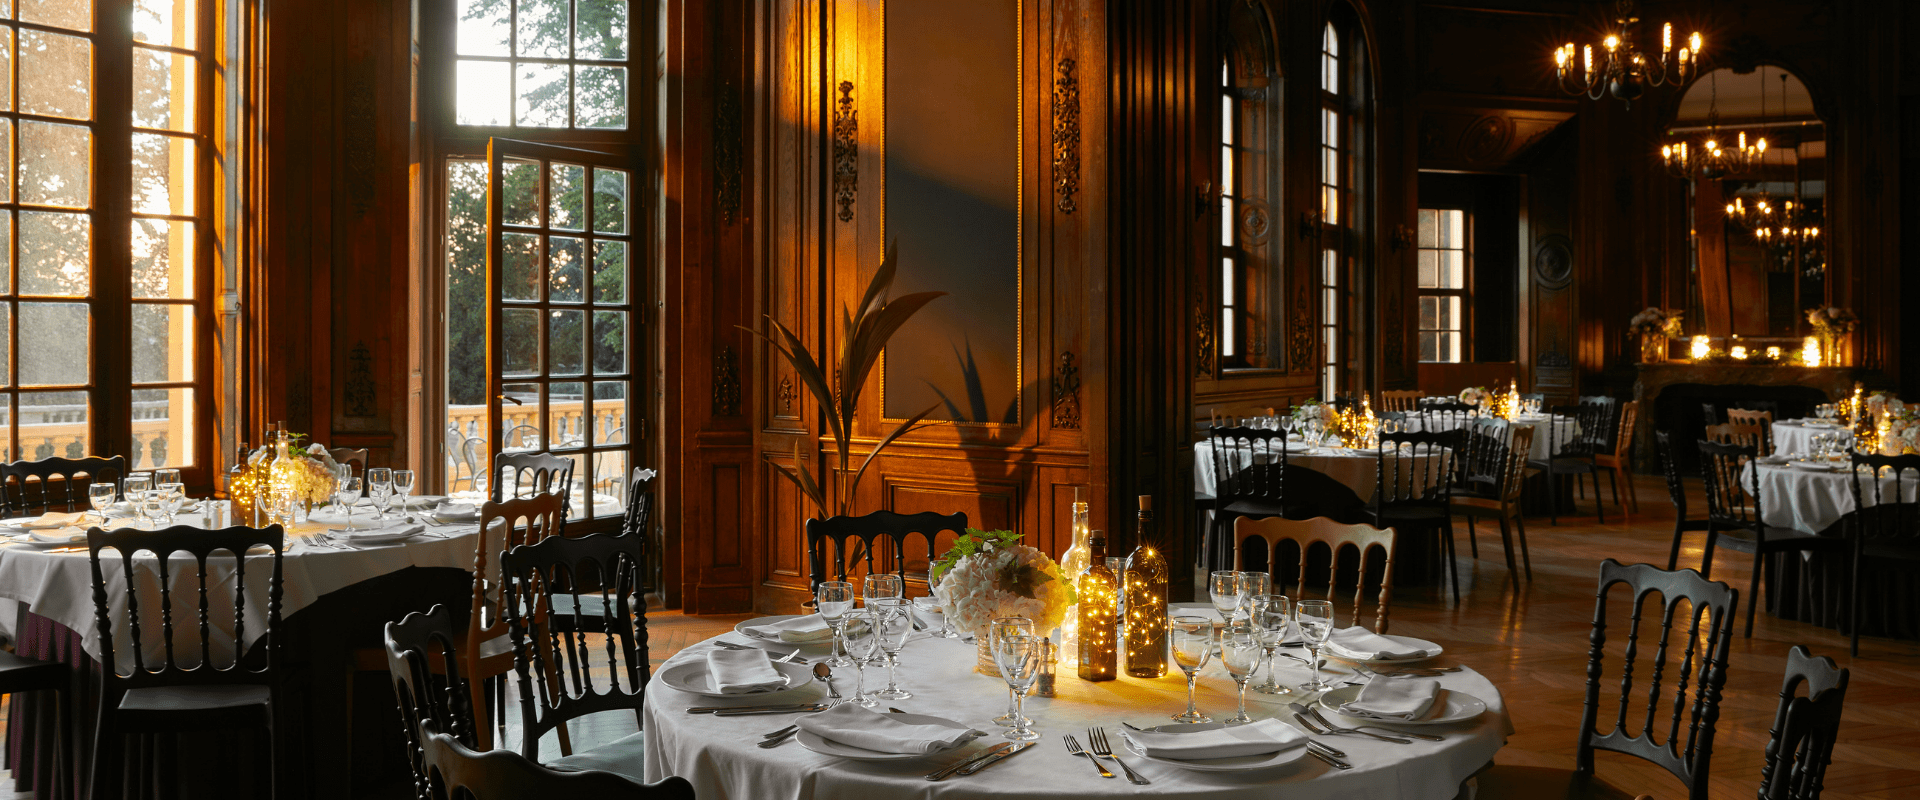 Historic Dining rooms